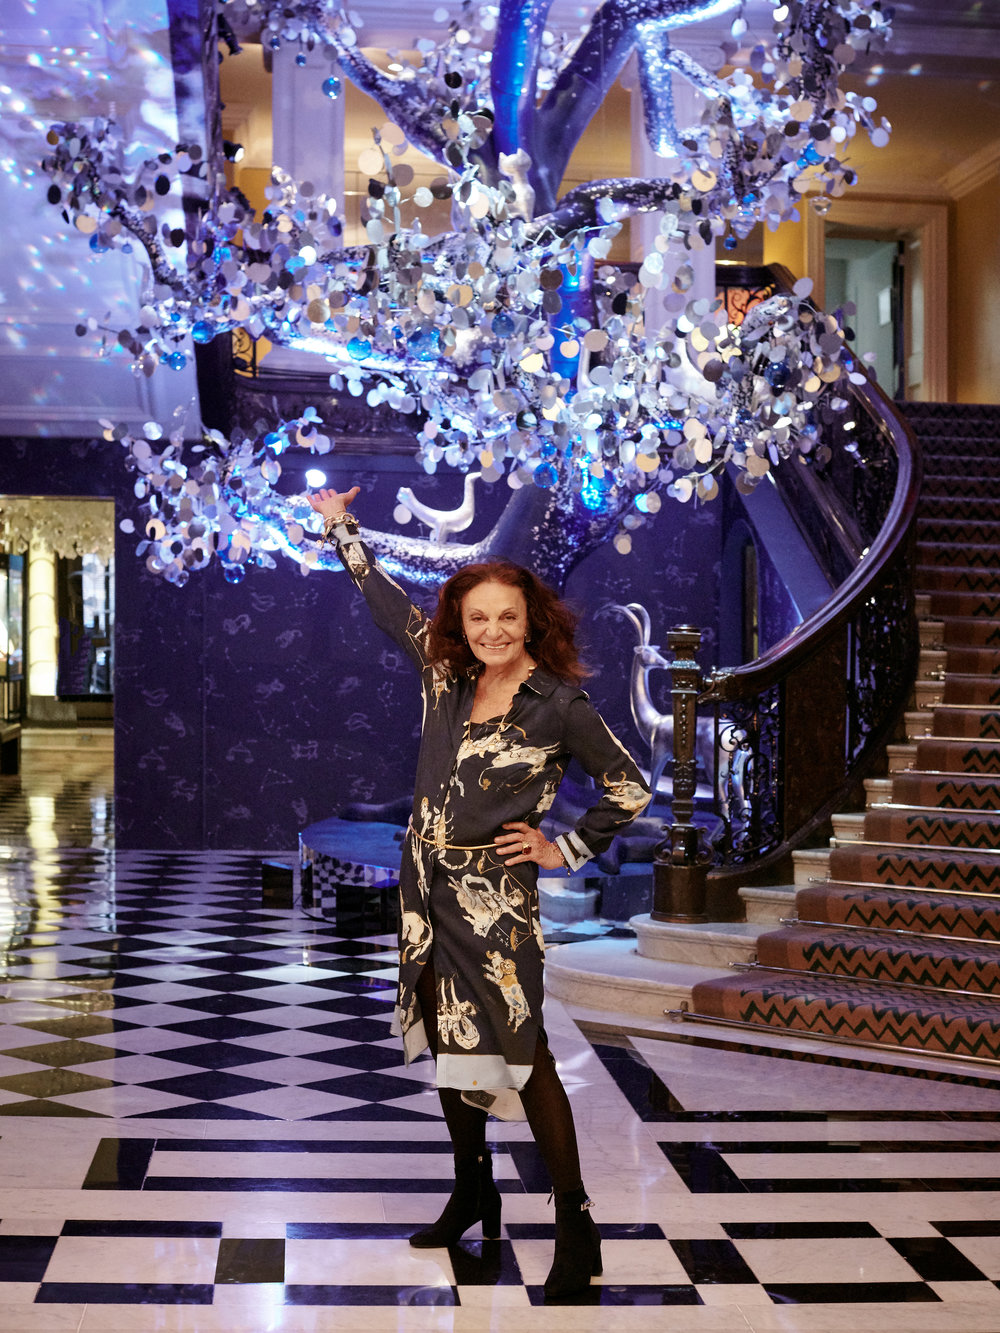 18_11_26_Claridges_Christmas_2018_JMS-011.jpg